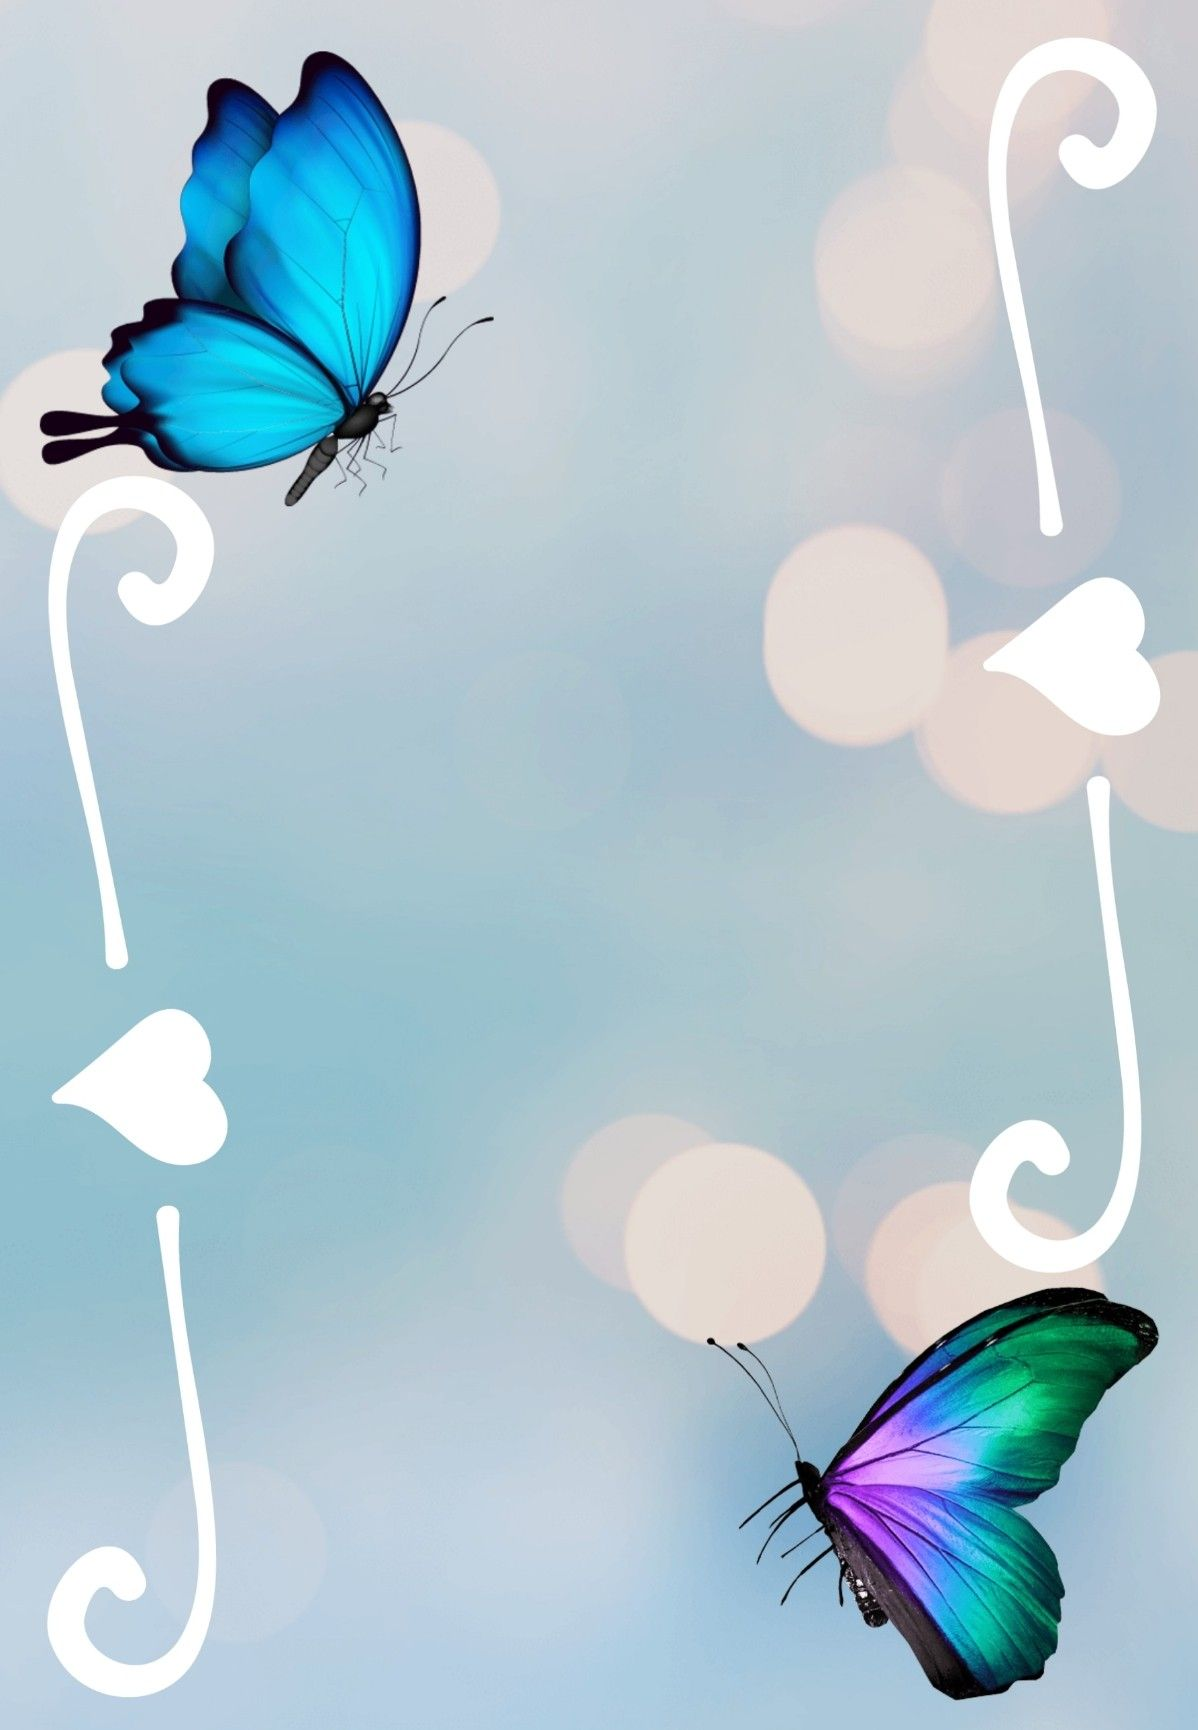 Pin By Cathy Zerby Walker On Beautiful Butterflies Butterfly Drawing Butterfly Wallpaper Butterfly Background